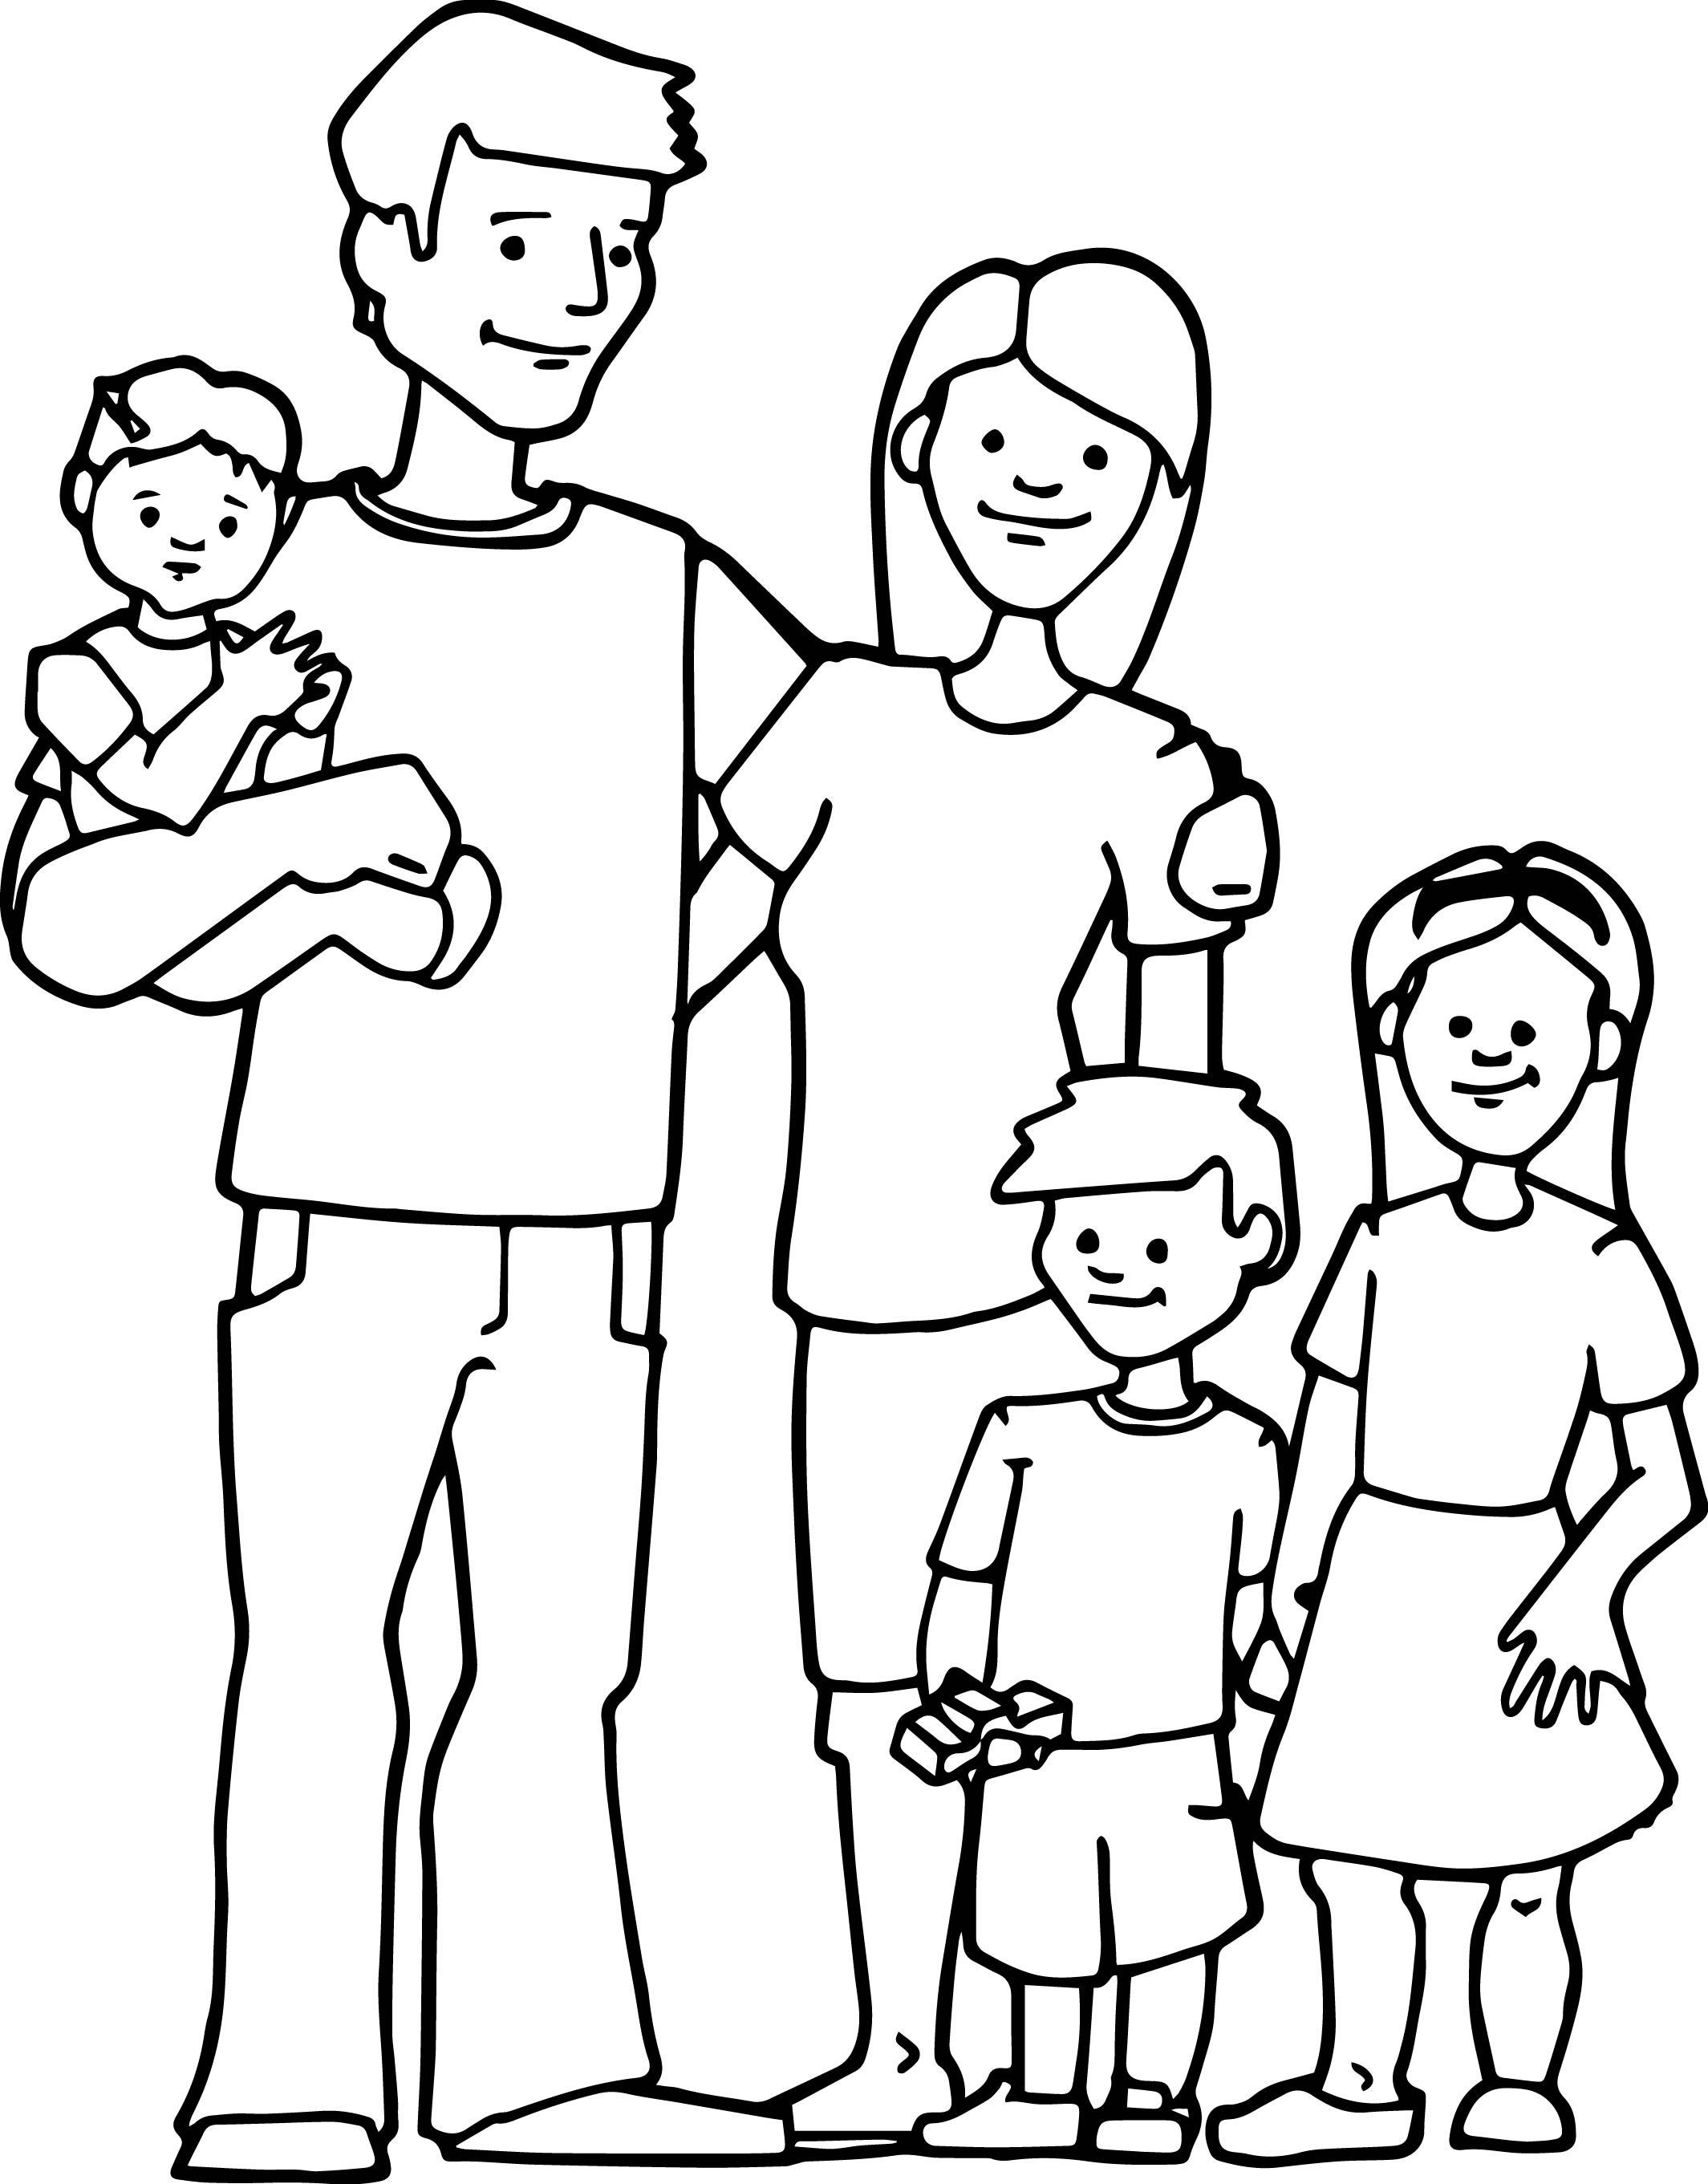 Best ideas about Coloring Pages For Girls From I Love My Family . Save or Pin Family Kids Coloring Page 2129×2722 Now.